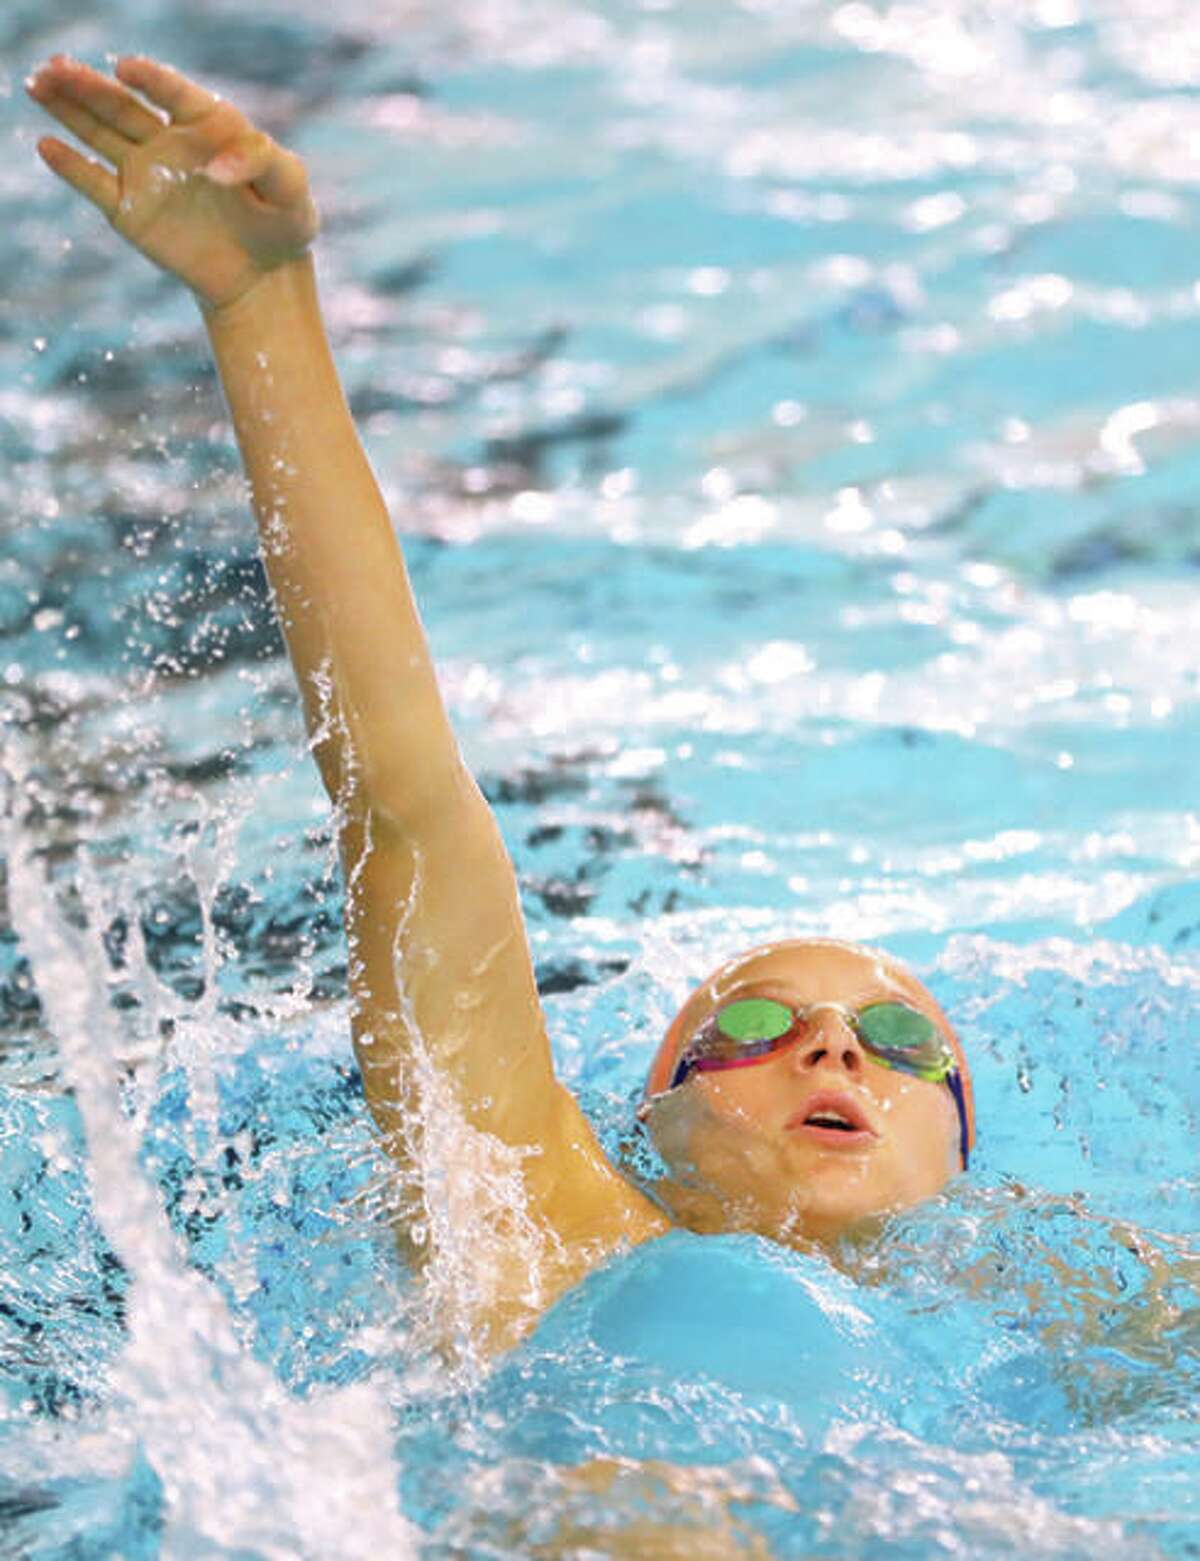 Edwardsville's Bailey Grinter competes in the 100-yard backstroke during a meet. Grinter was a state champion in the event.